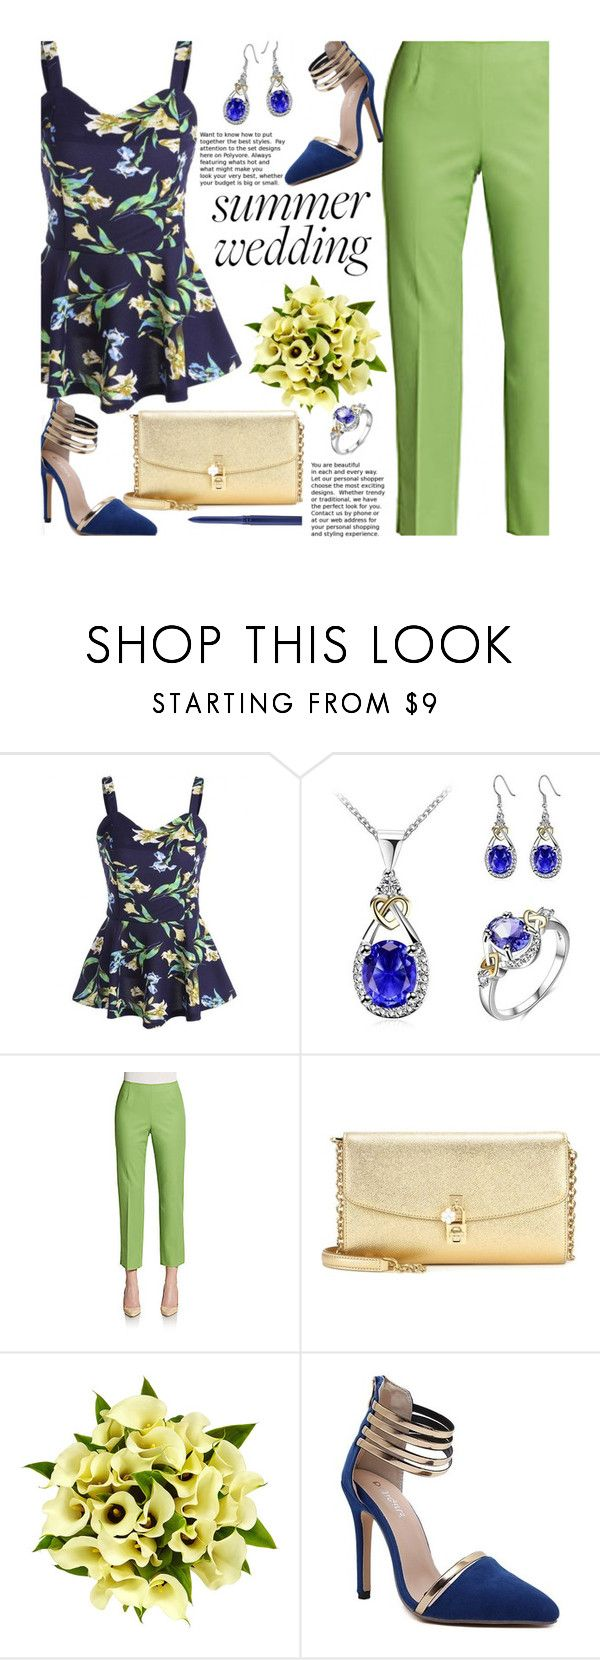 """Say I Do: Summer Weddings"" by beebeely-look ❤ liked on Polyvore featuring Lafayette 148 New York, Dolce&Gabbana, Fountain, MAC Cosmetics, wedding, floralprint, summerwedding, bestdressedguest and twinkledeals"